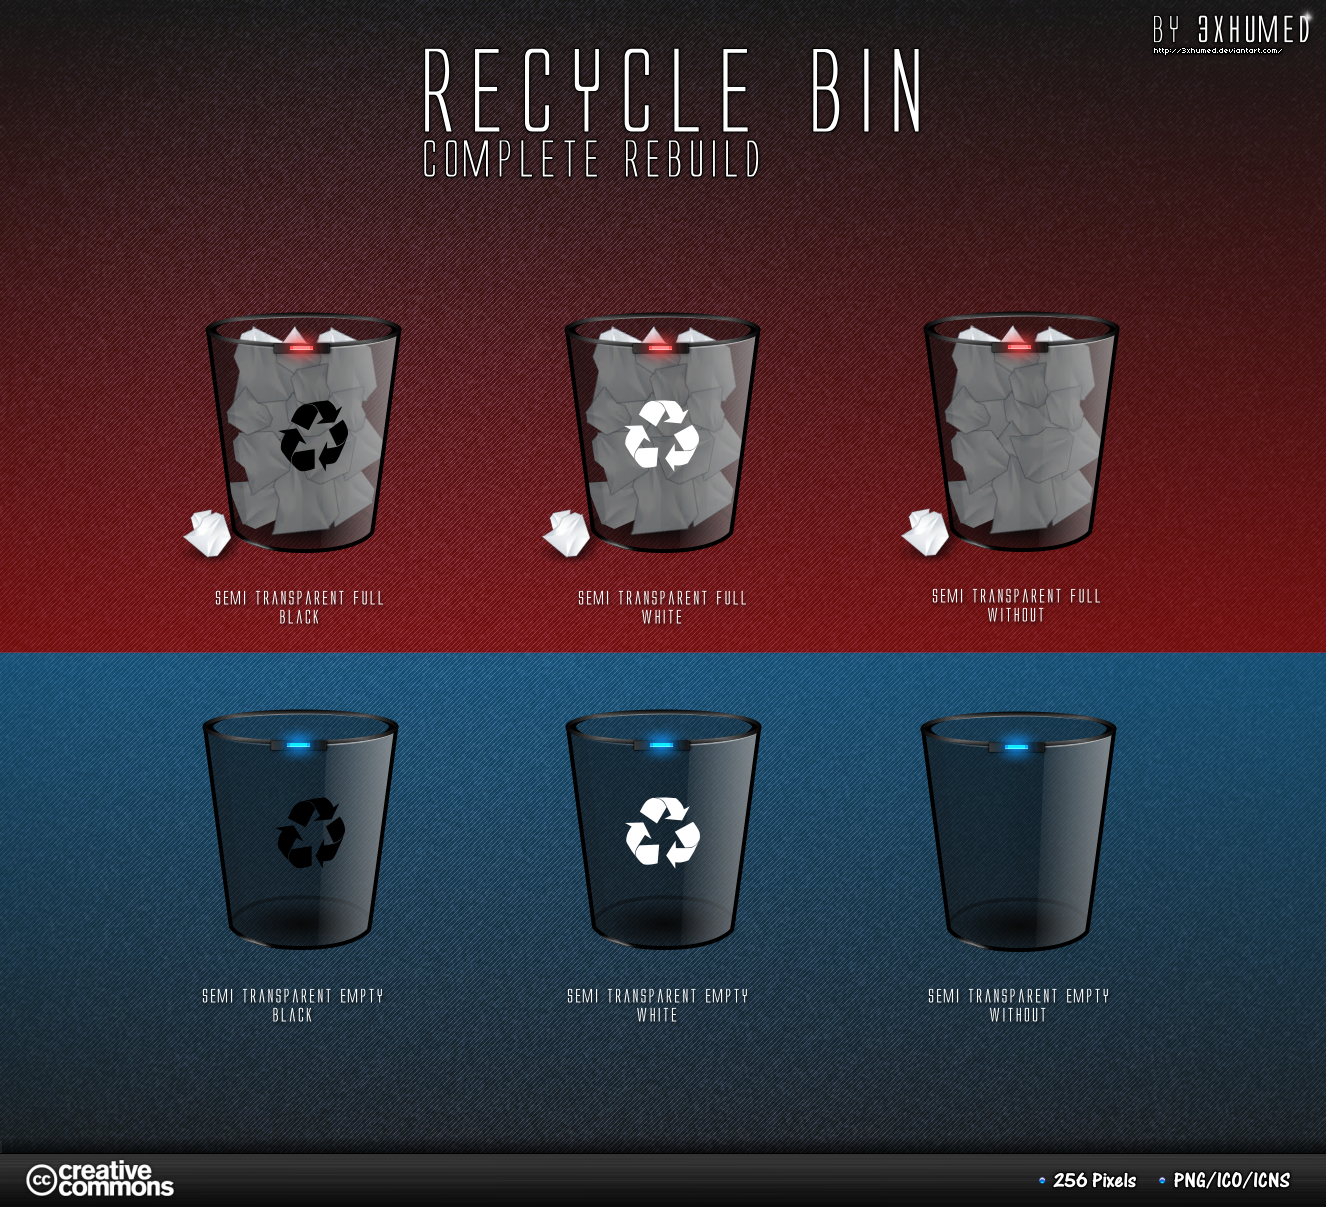 Recycle Bin - Black Version by 3xhumed